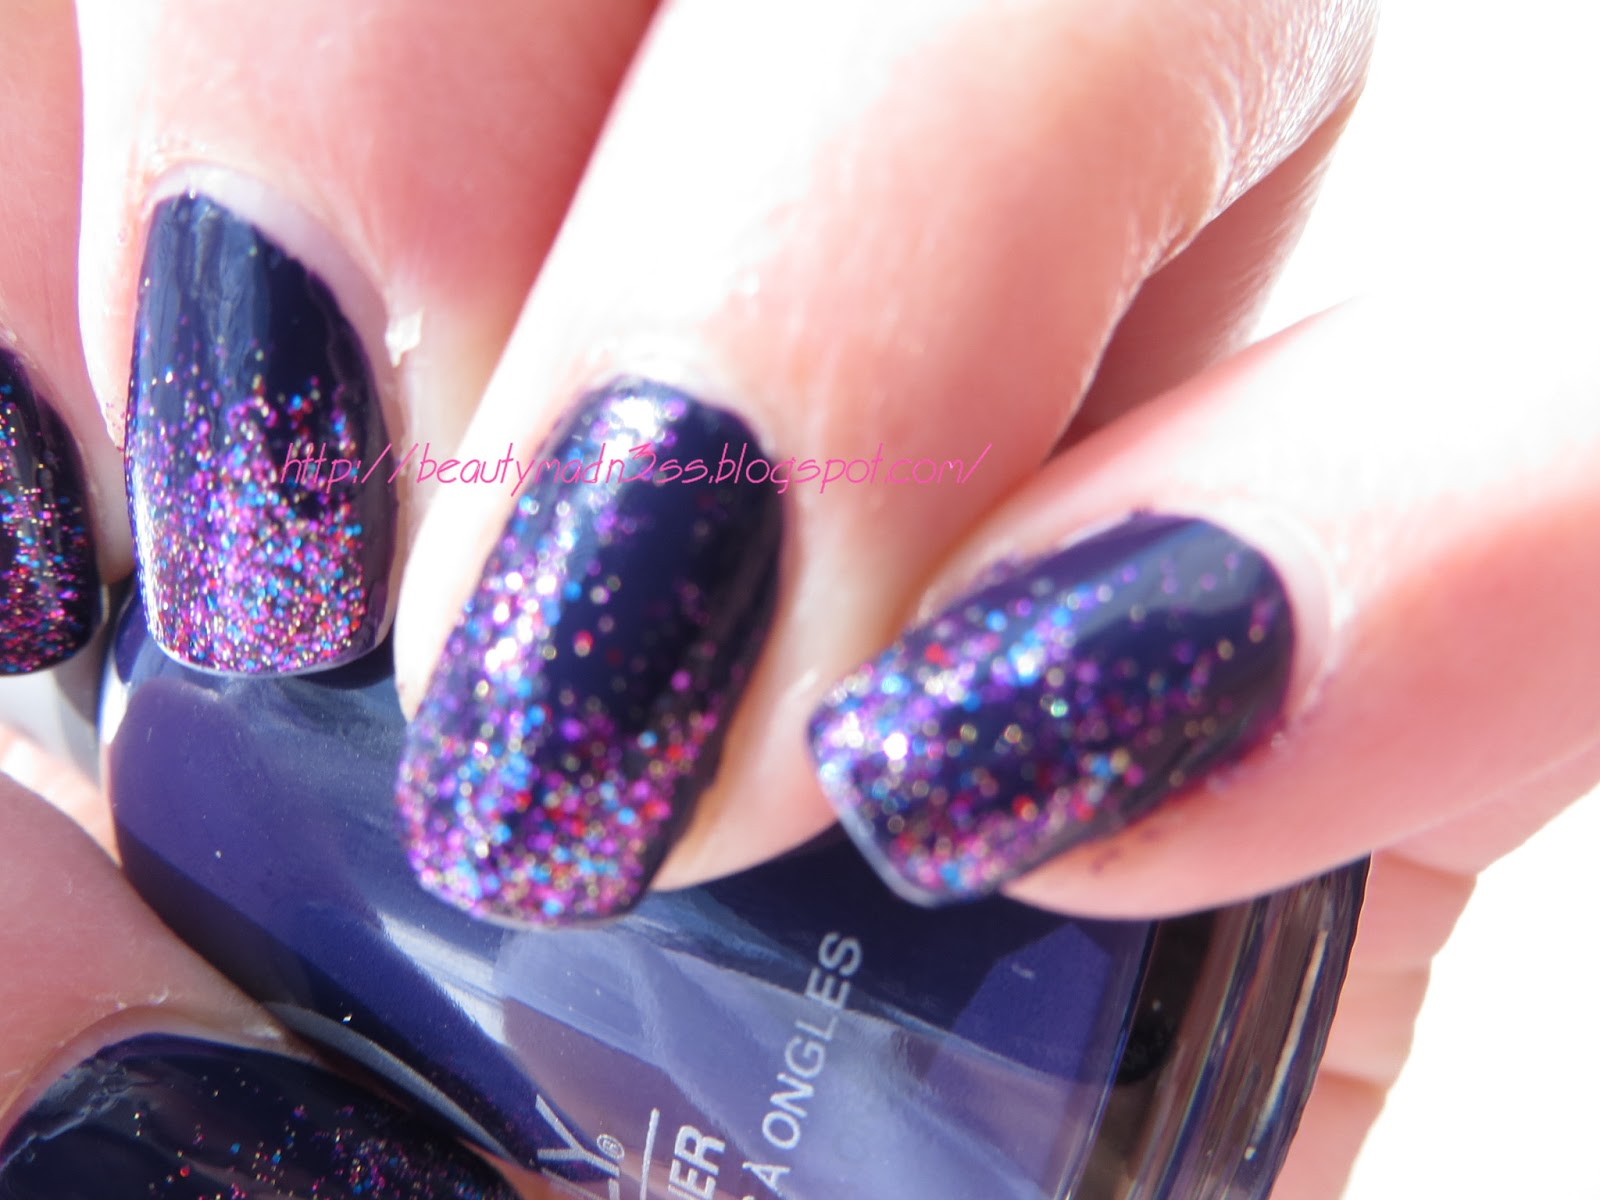 Orly Wild Wisteria swatch, Butter London Lovely Jubbly swatch